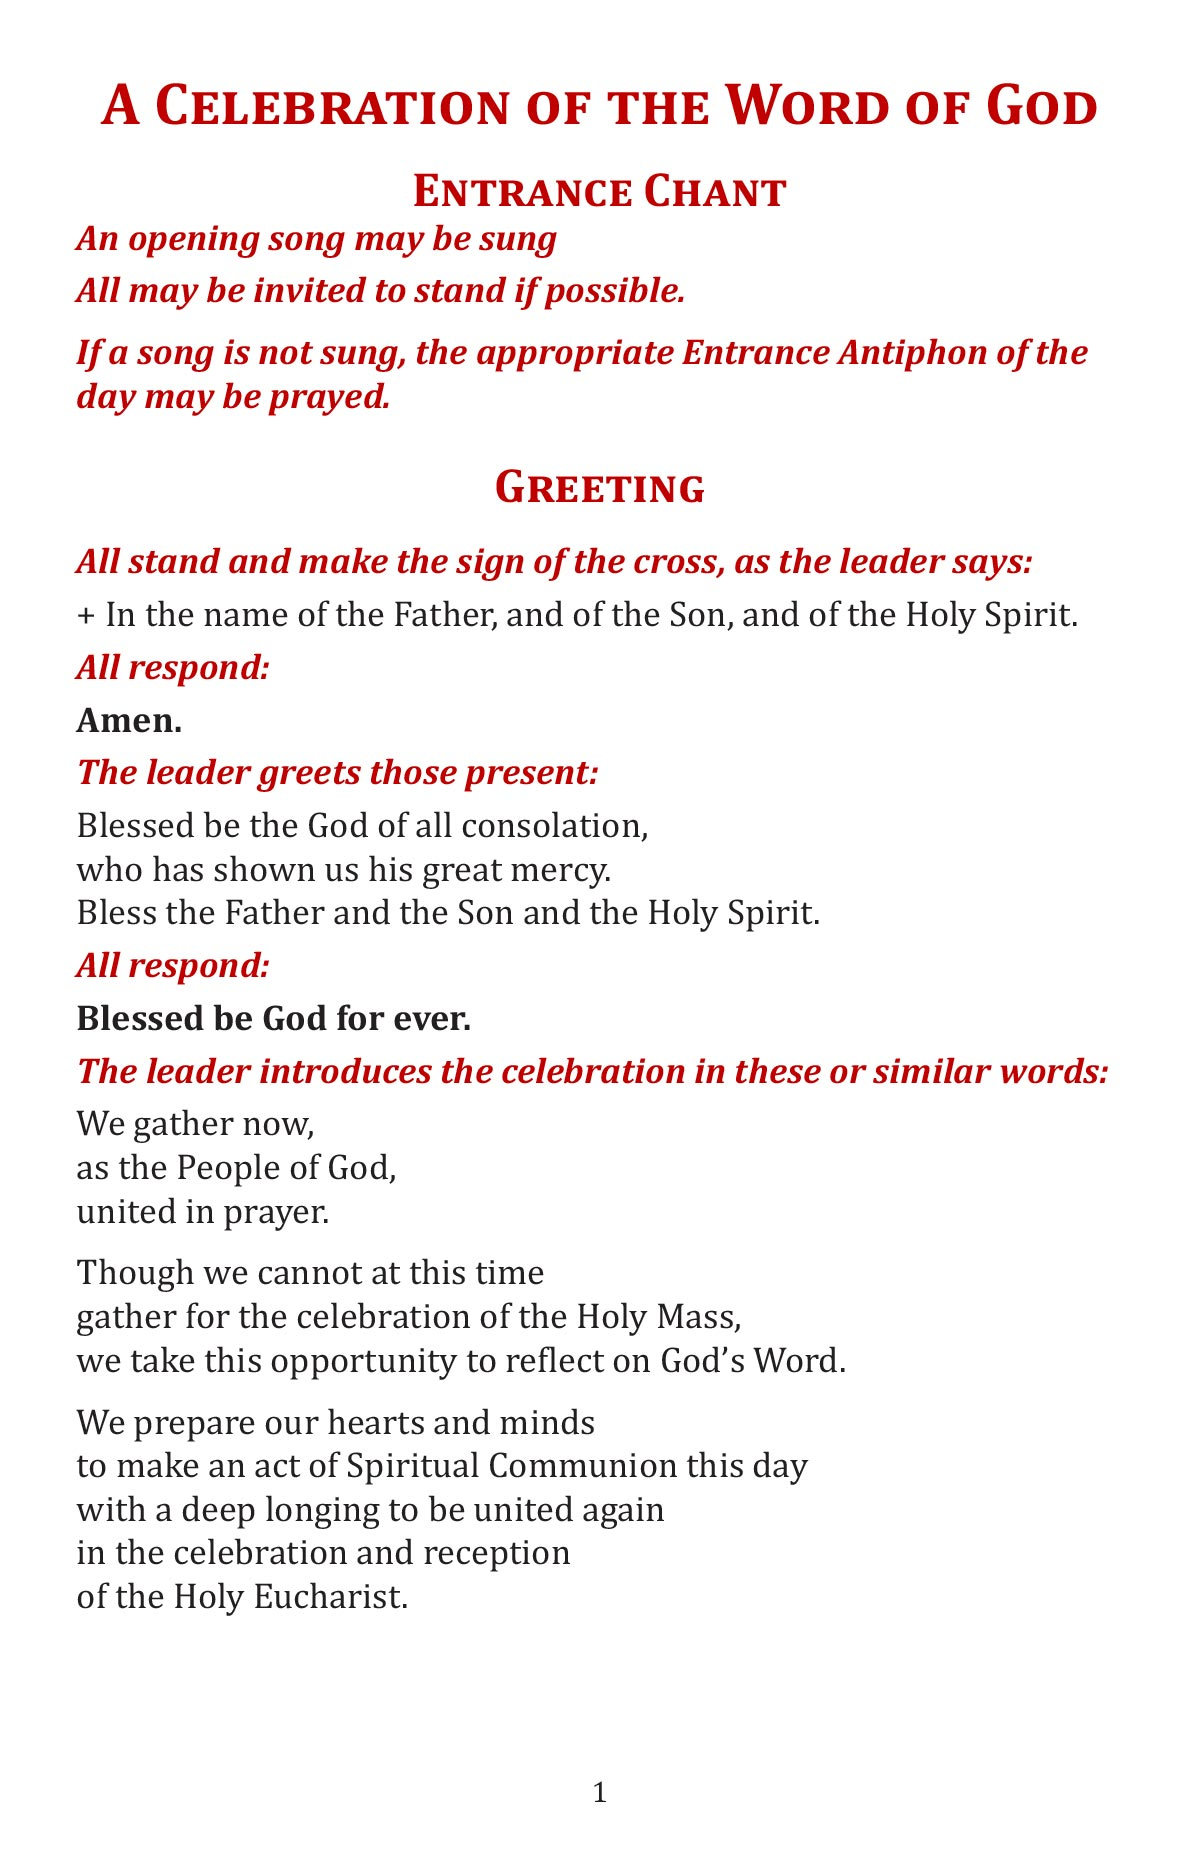 A Celebtation of the Word of God booklet page 3